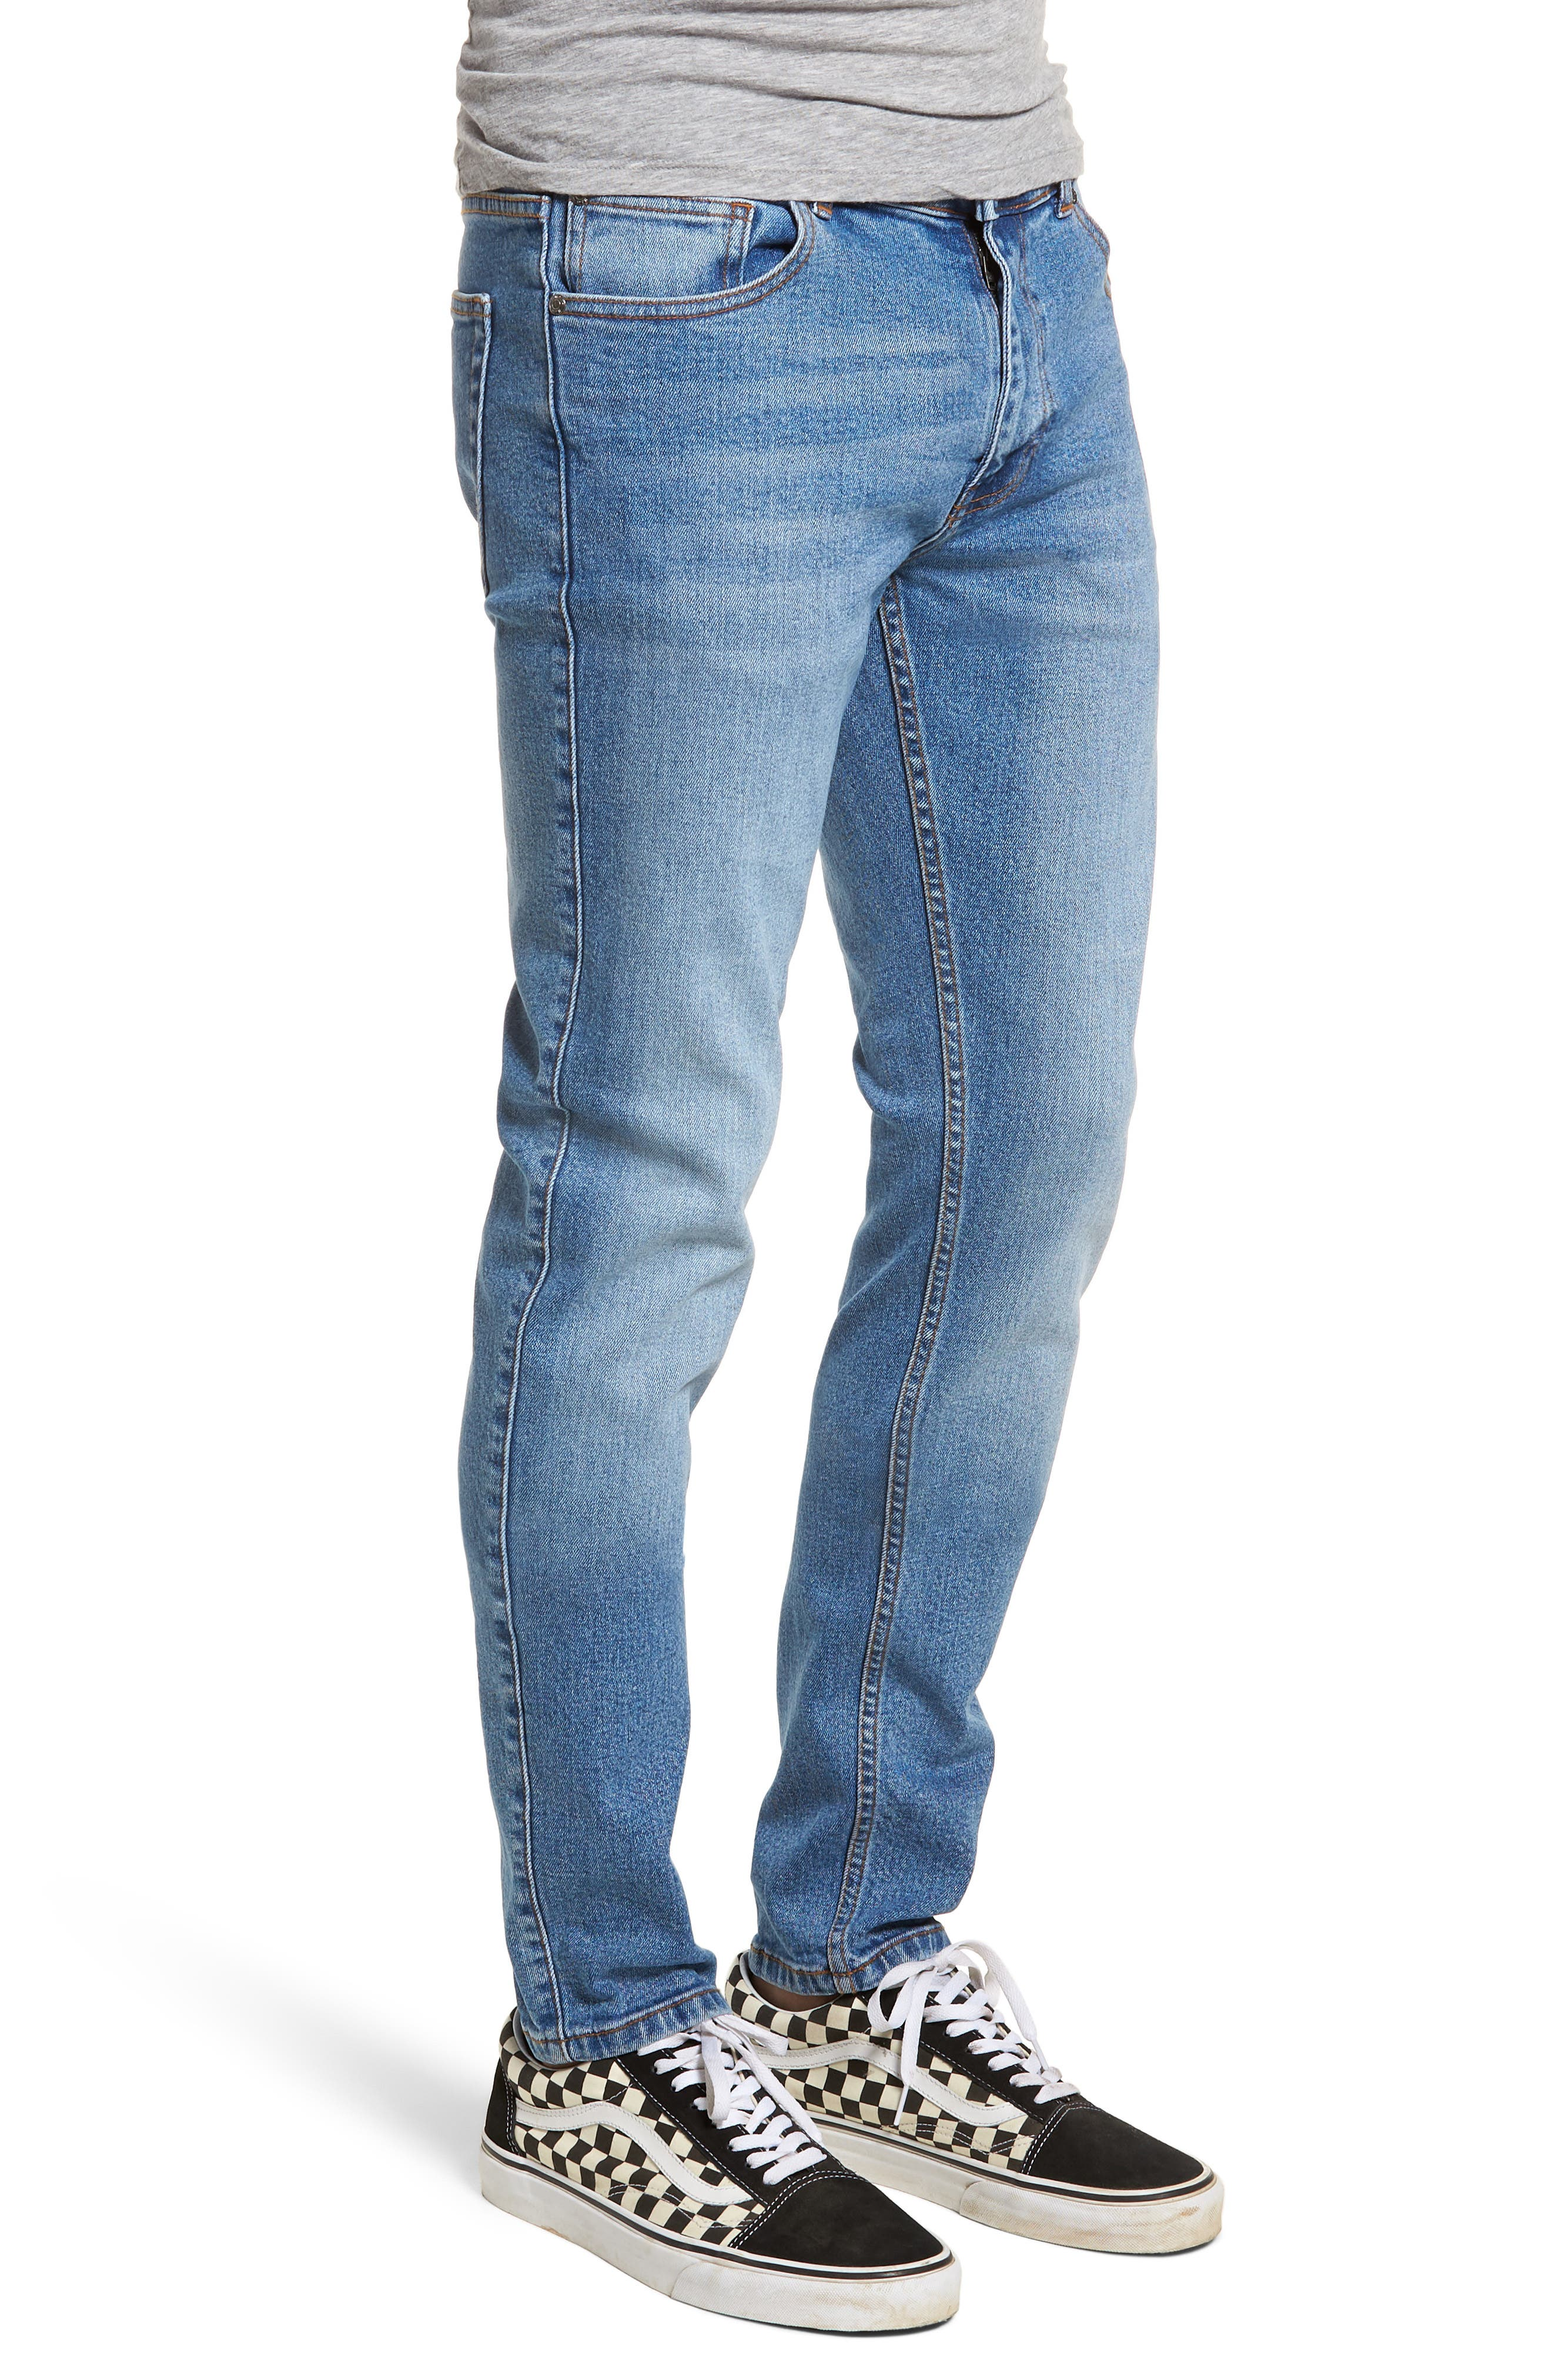 Clark Slim Straight Leg Jeans,                             Alternate thumbnail 3, color,                             402